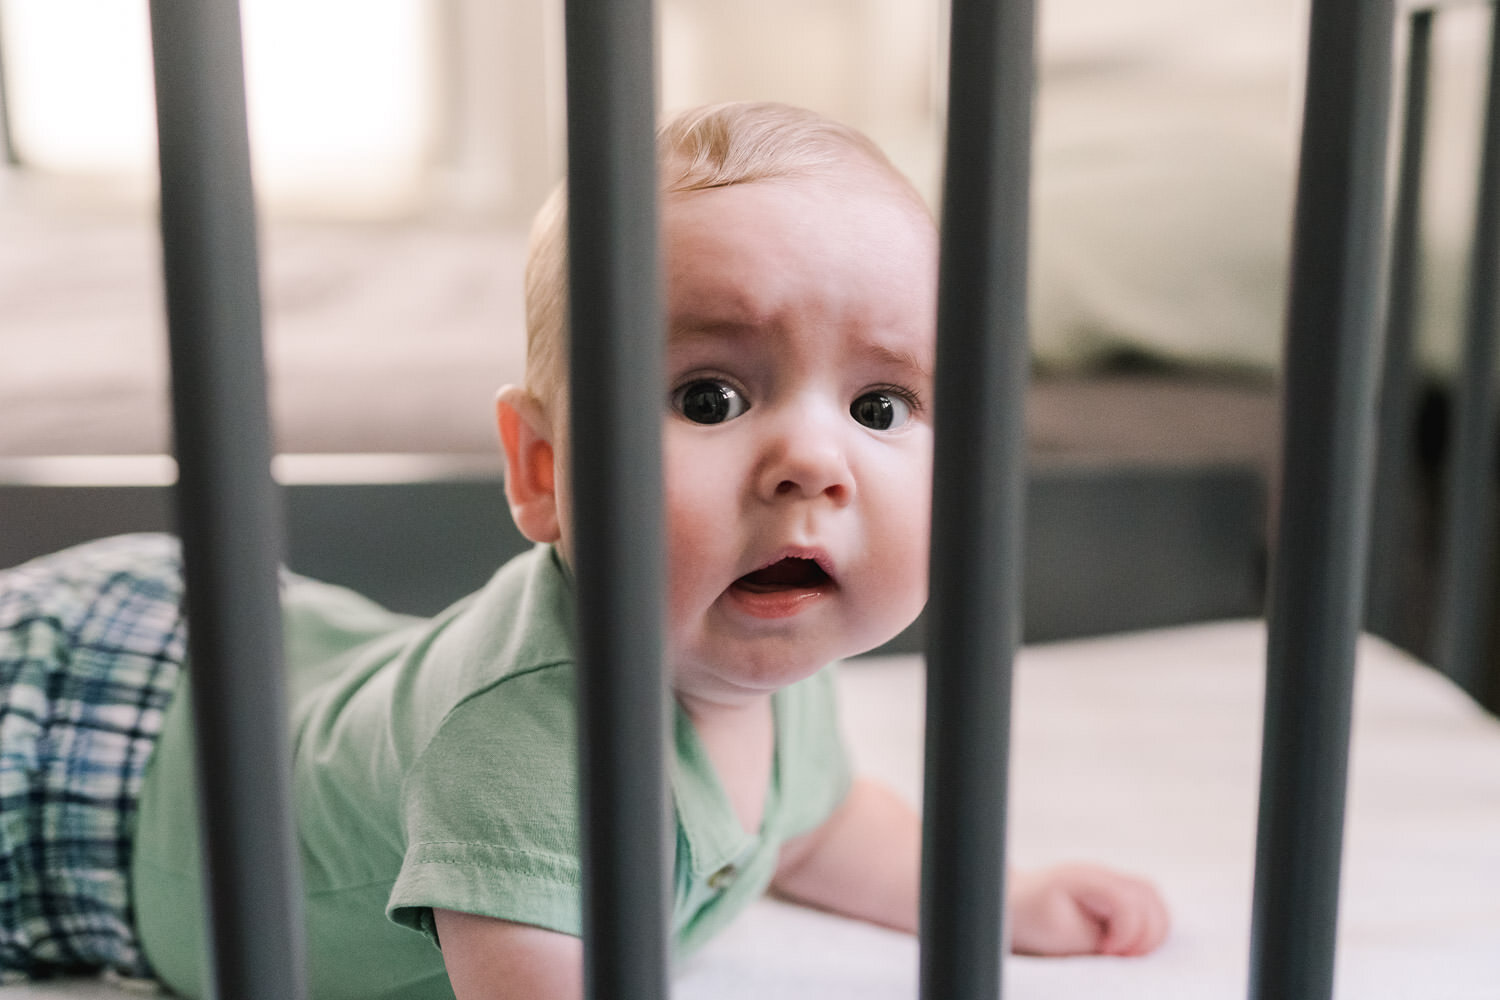 A baby peers through the slats of his crib.